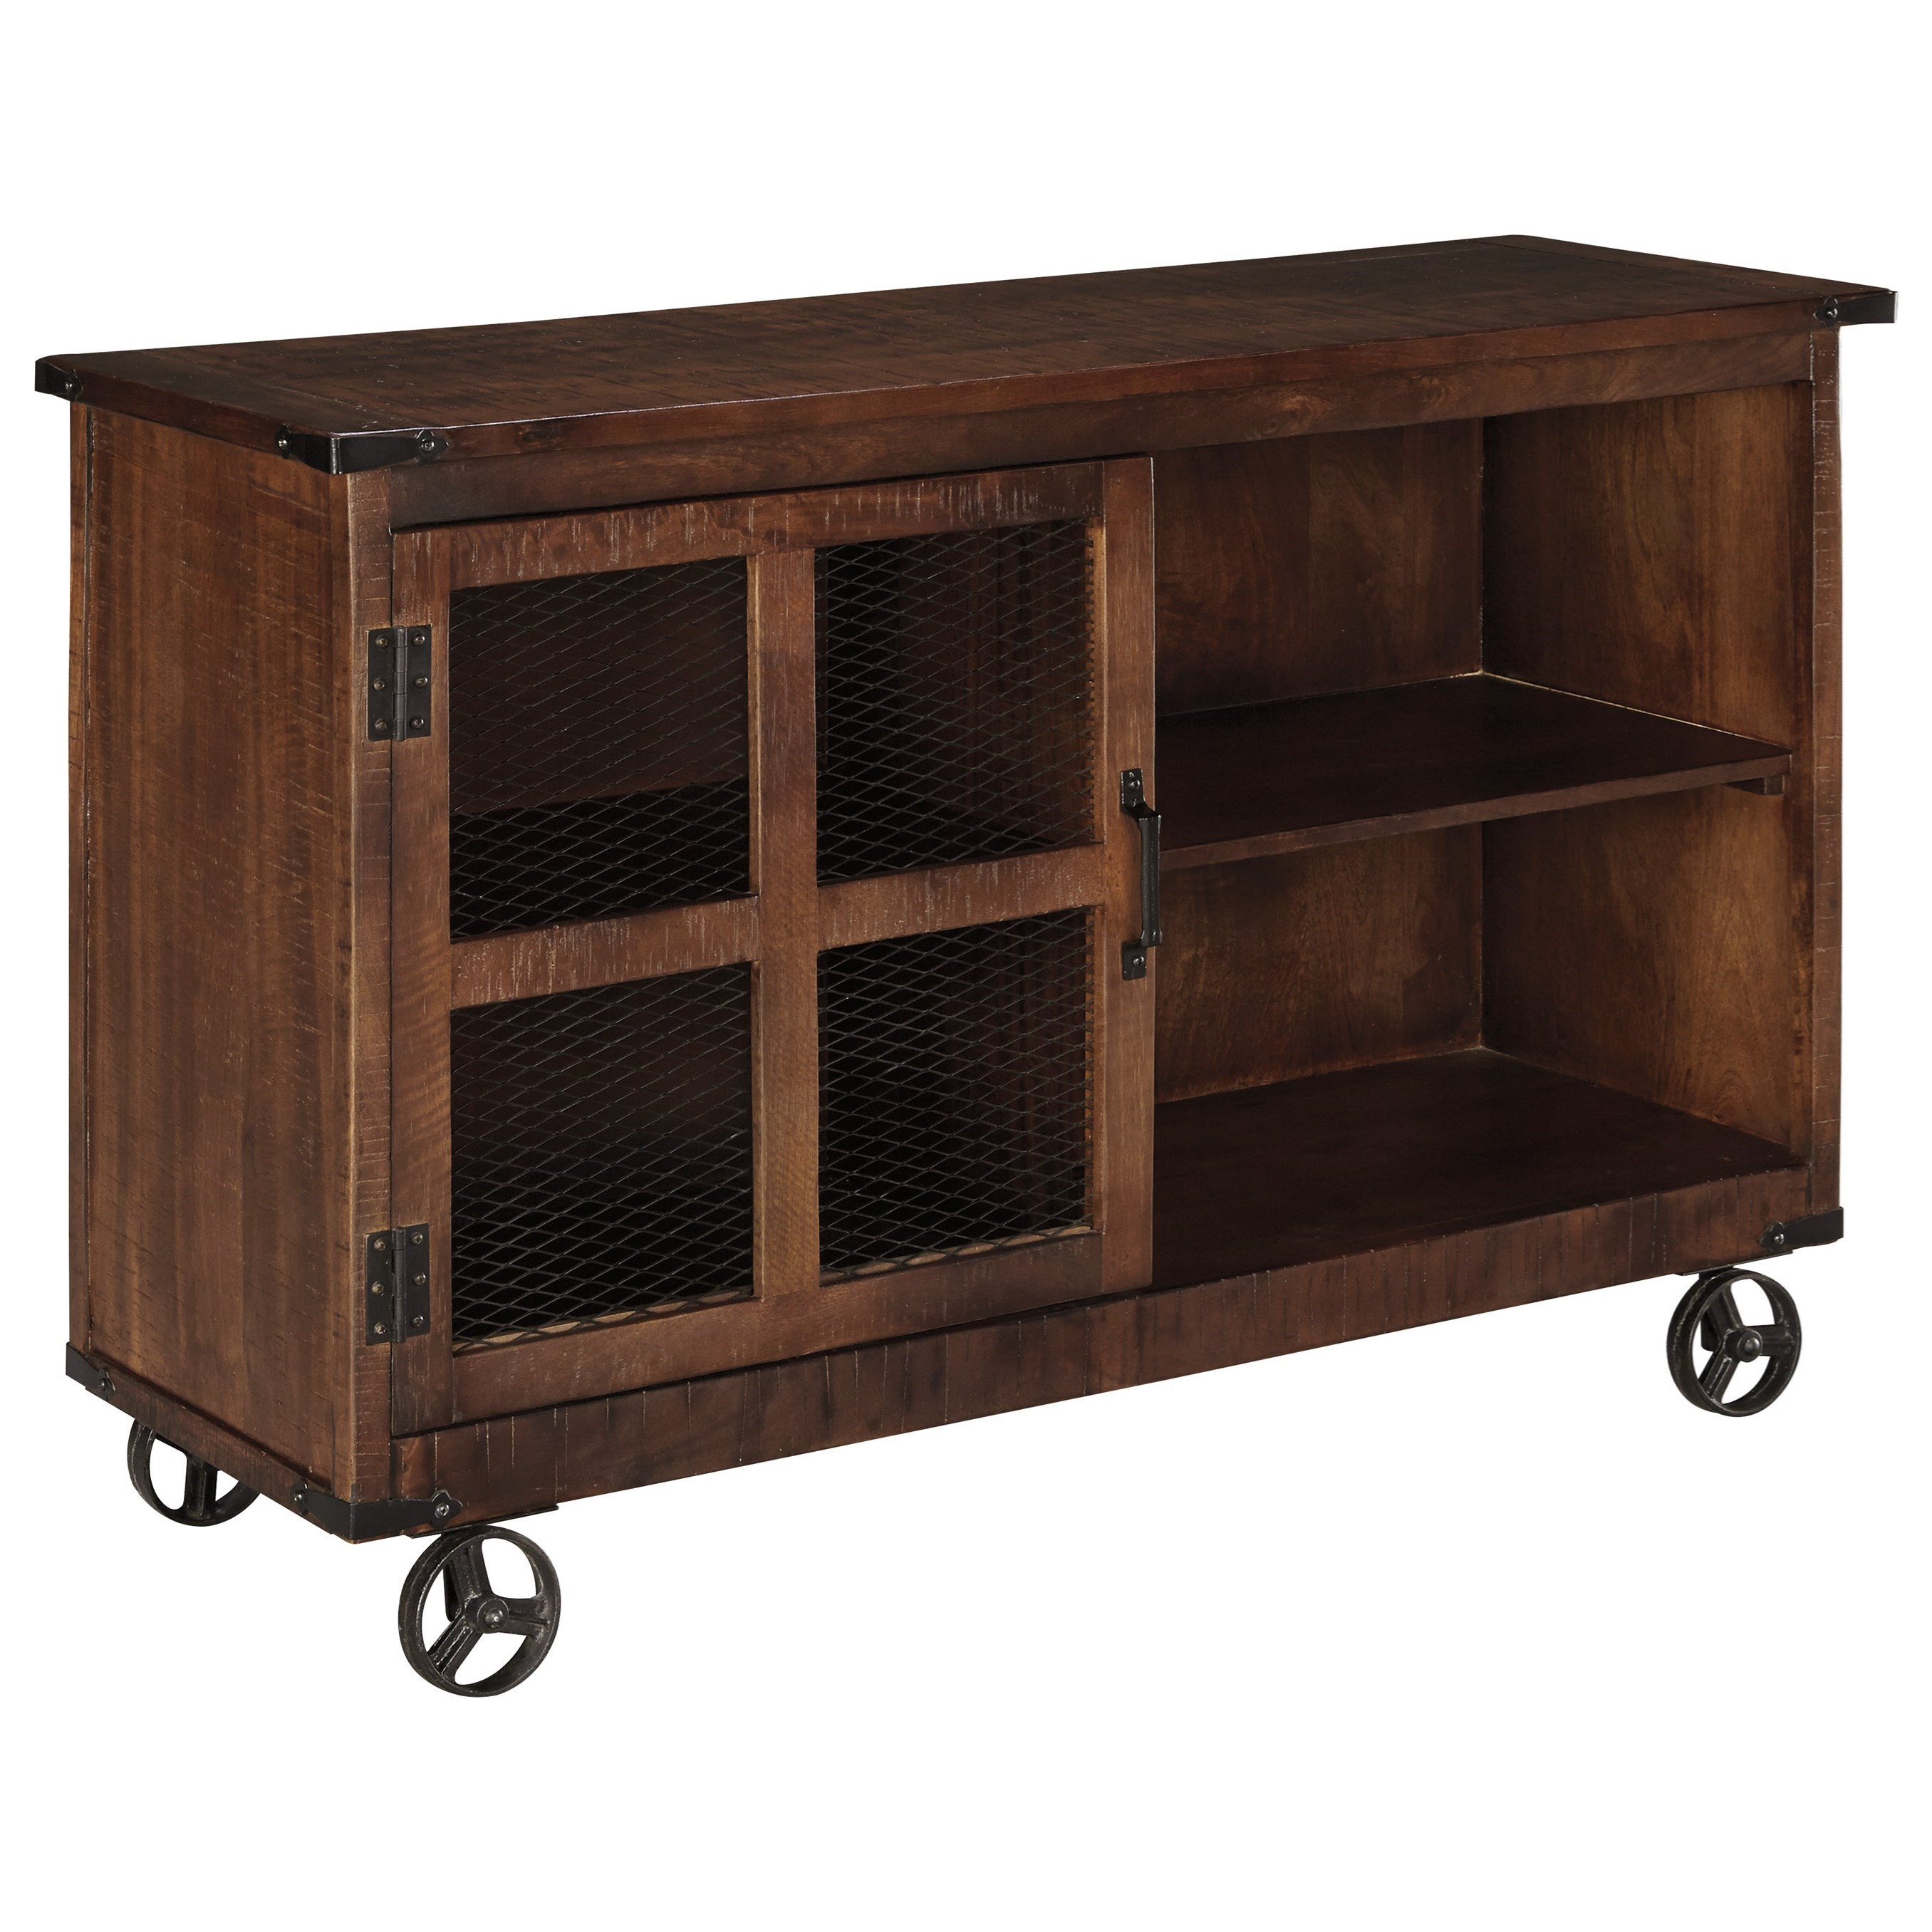 Signature design by ashley norlandon rustic industrial for Sofa table on wheels